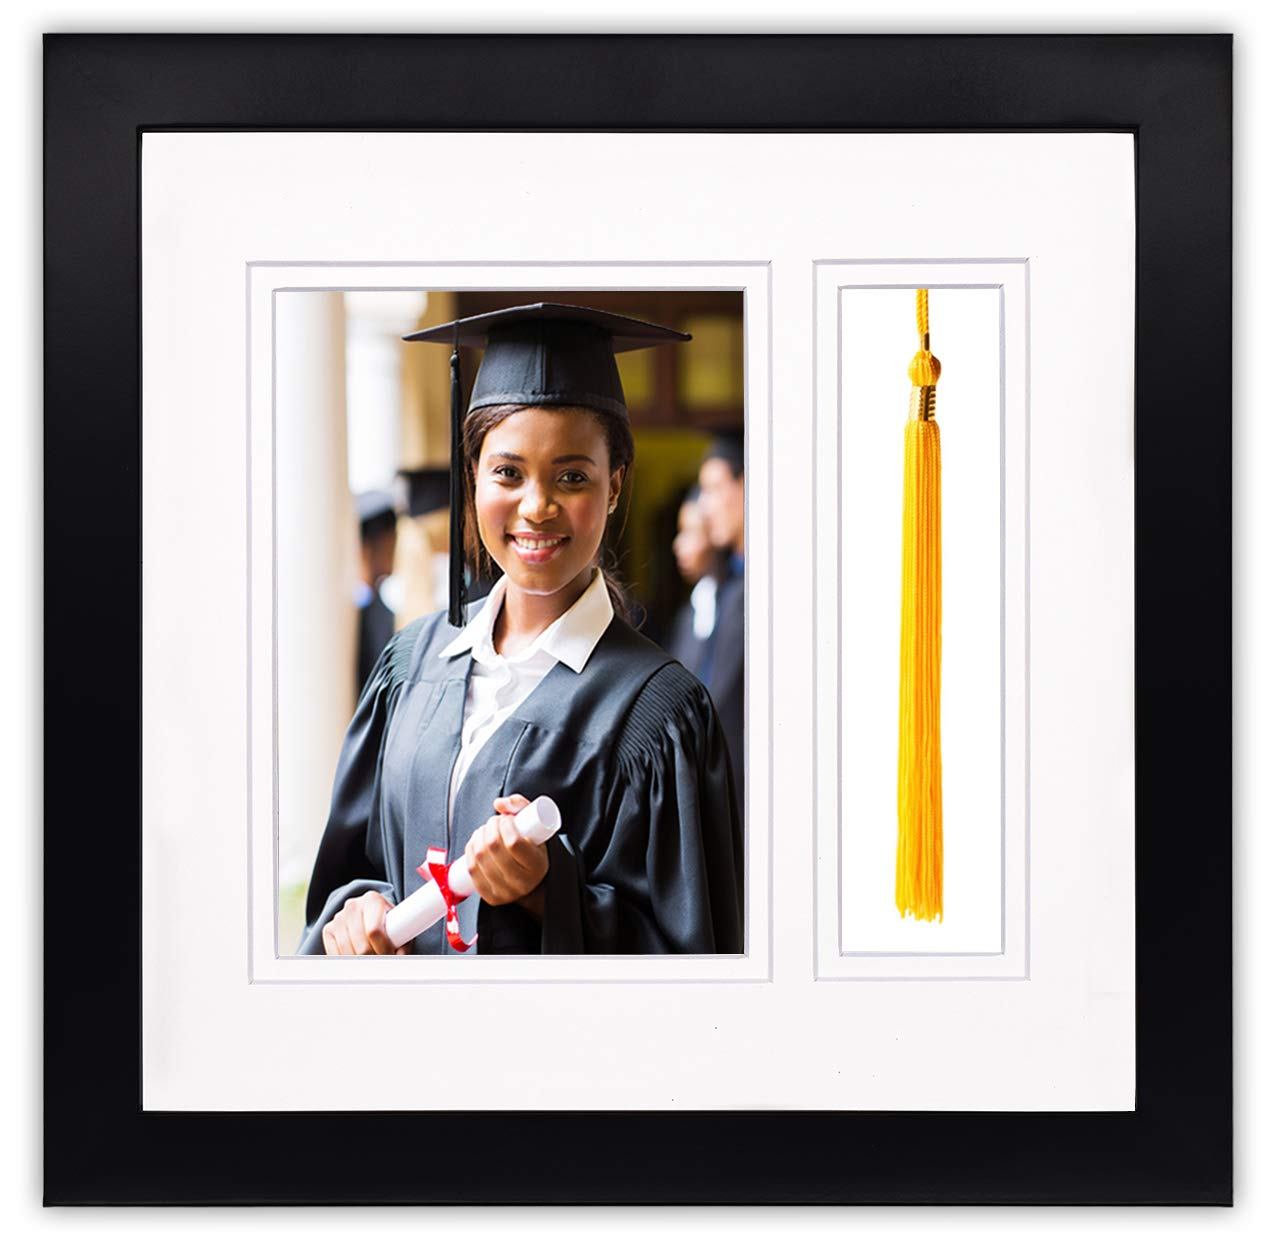 Golden State Art, 10x10 Graduation Shadow Box Frame for 5x7 Photo with Tassel Insert, Double Mat (White Over White)